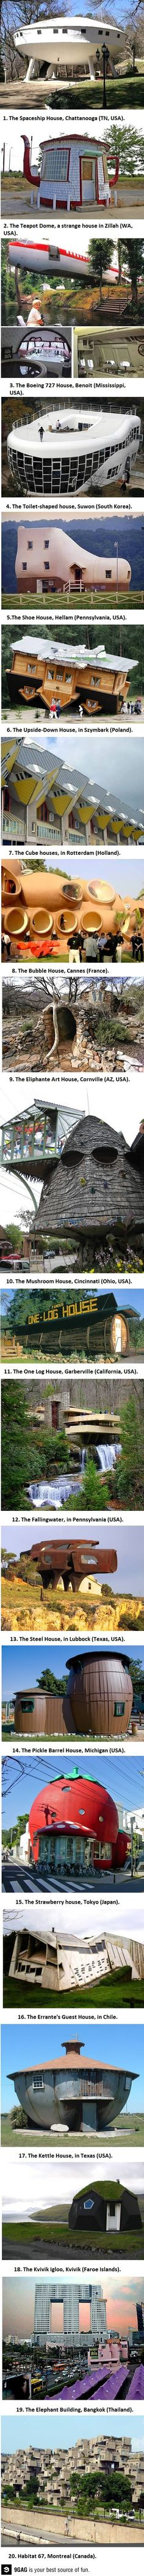 weird awesome places